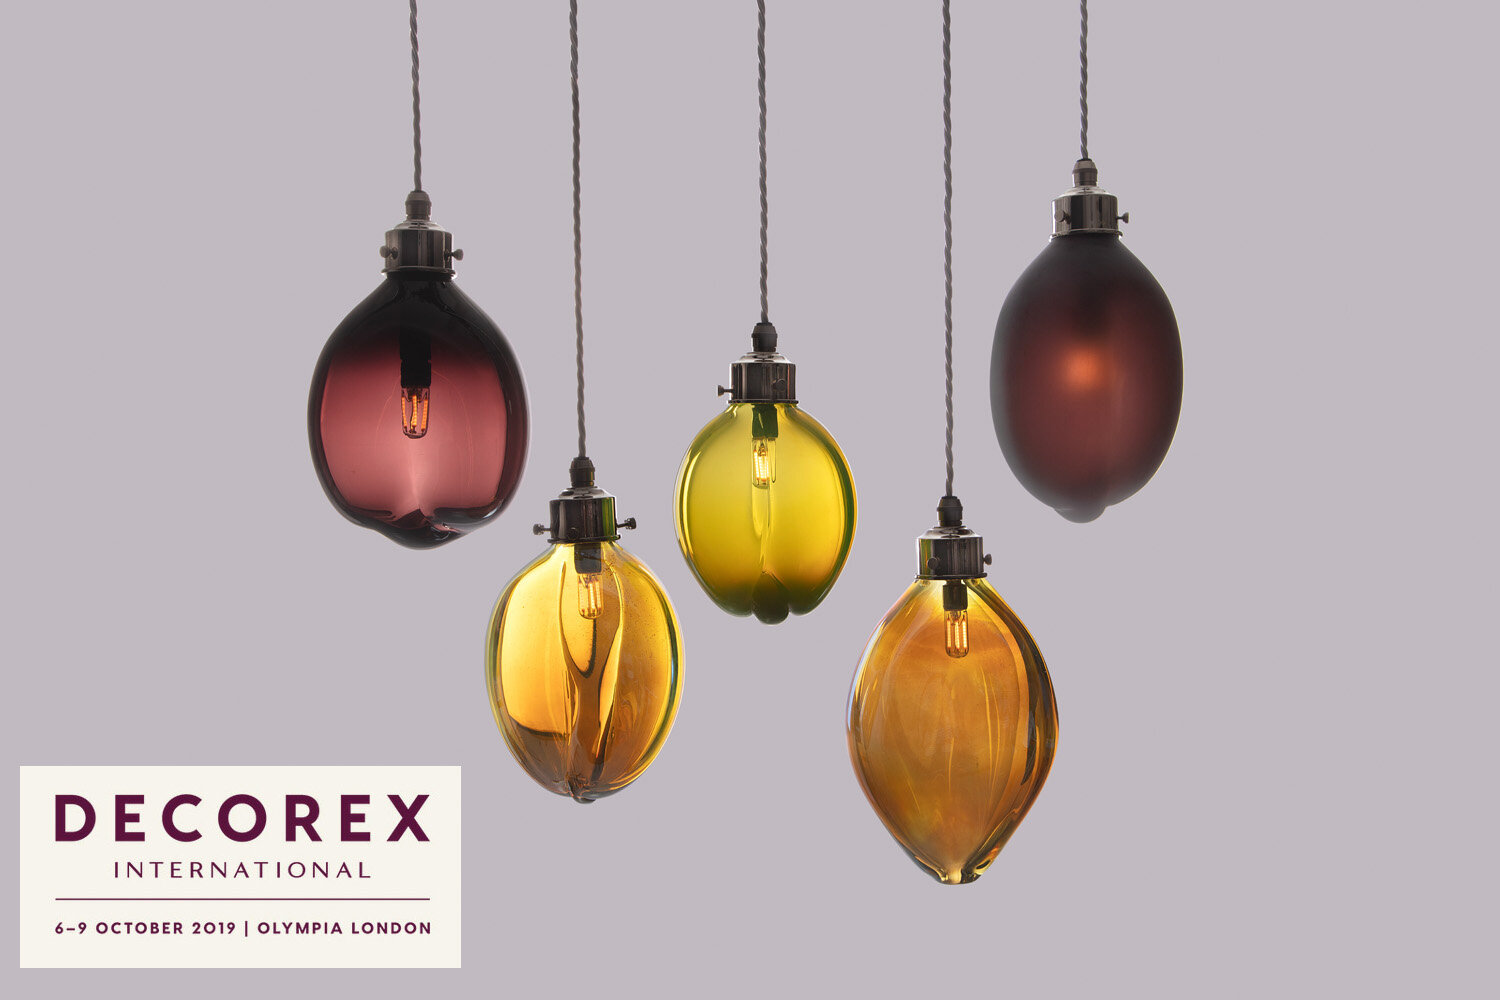 New lighting collection being launched at Decorex upstairs on stand J27.